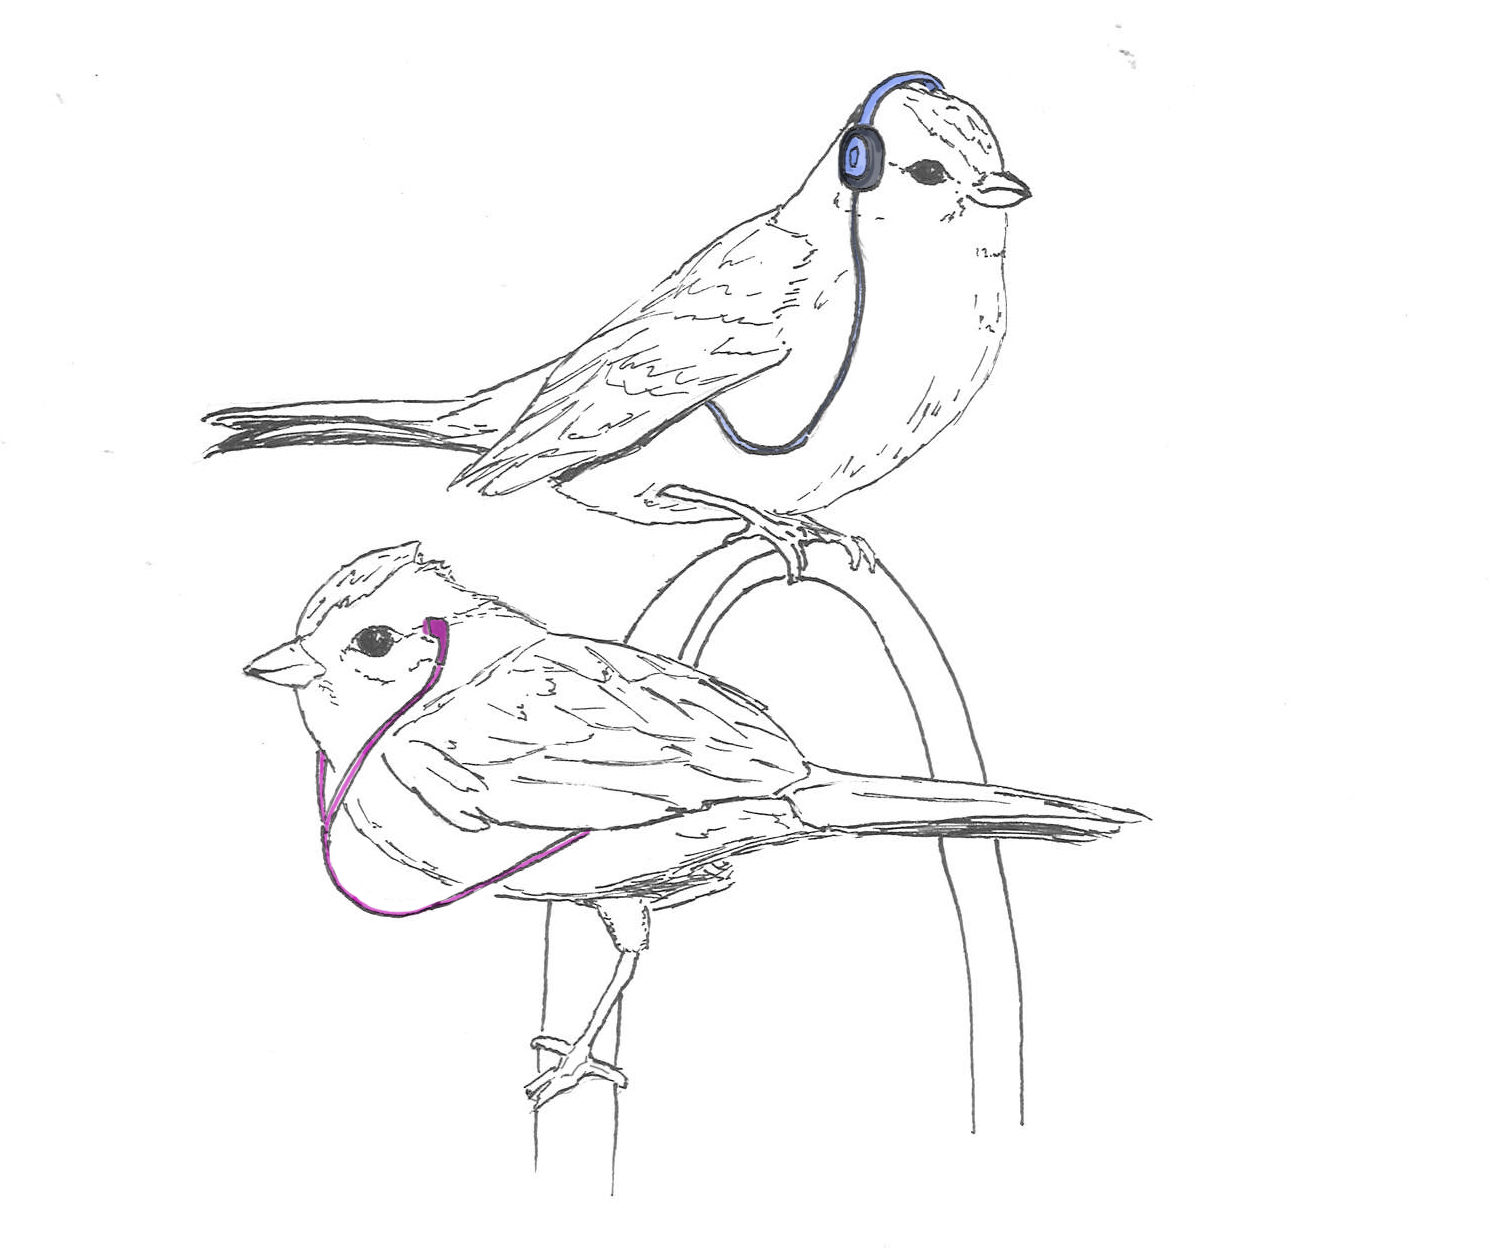 how to draw a sparrow step by step how to draw a house sparrow step by step part 3 easy to how by a draw sparrow step step